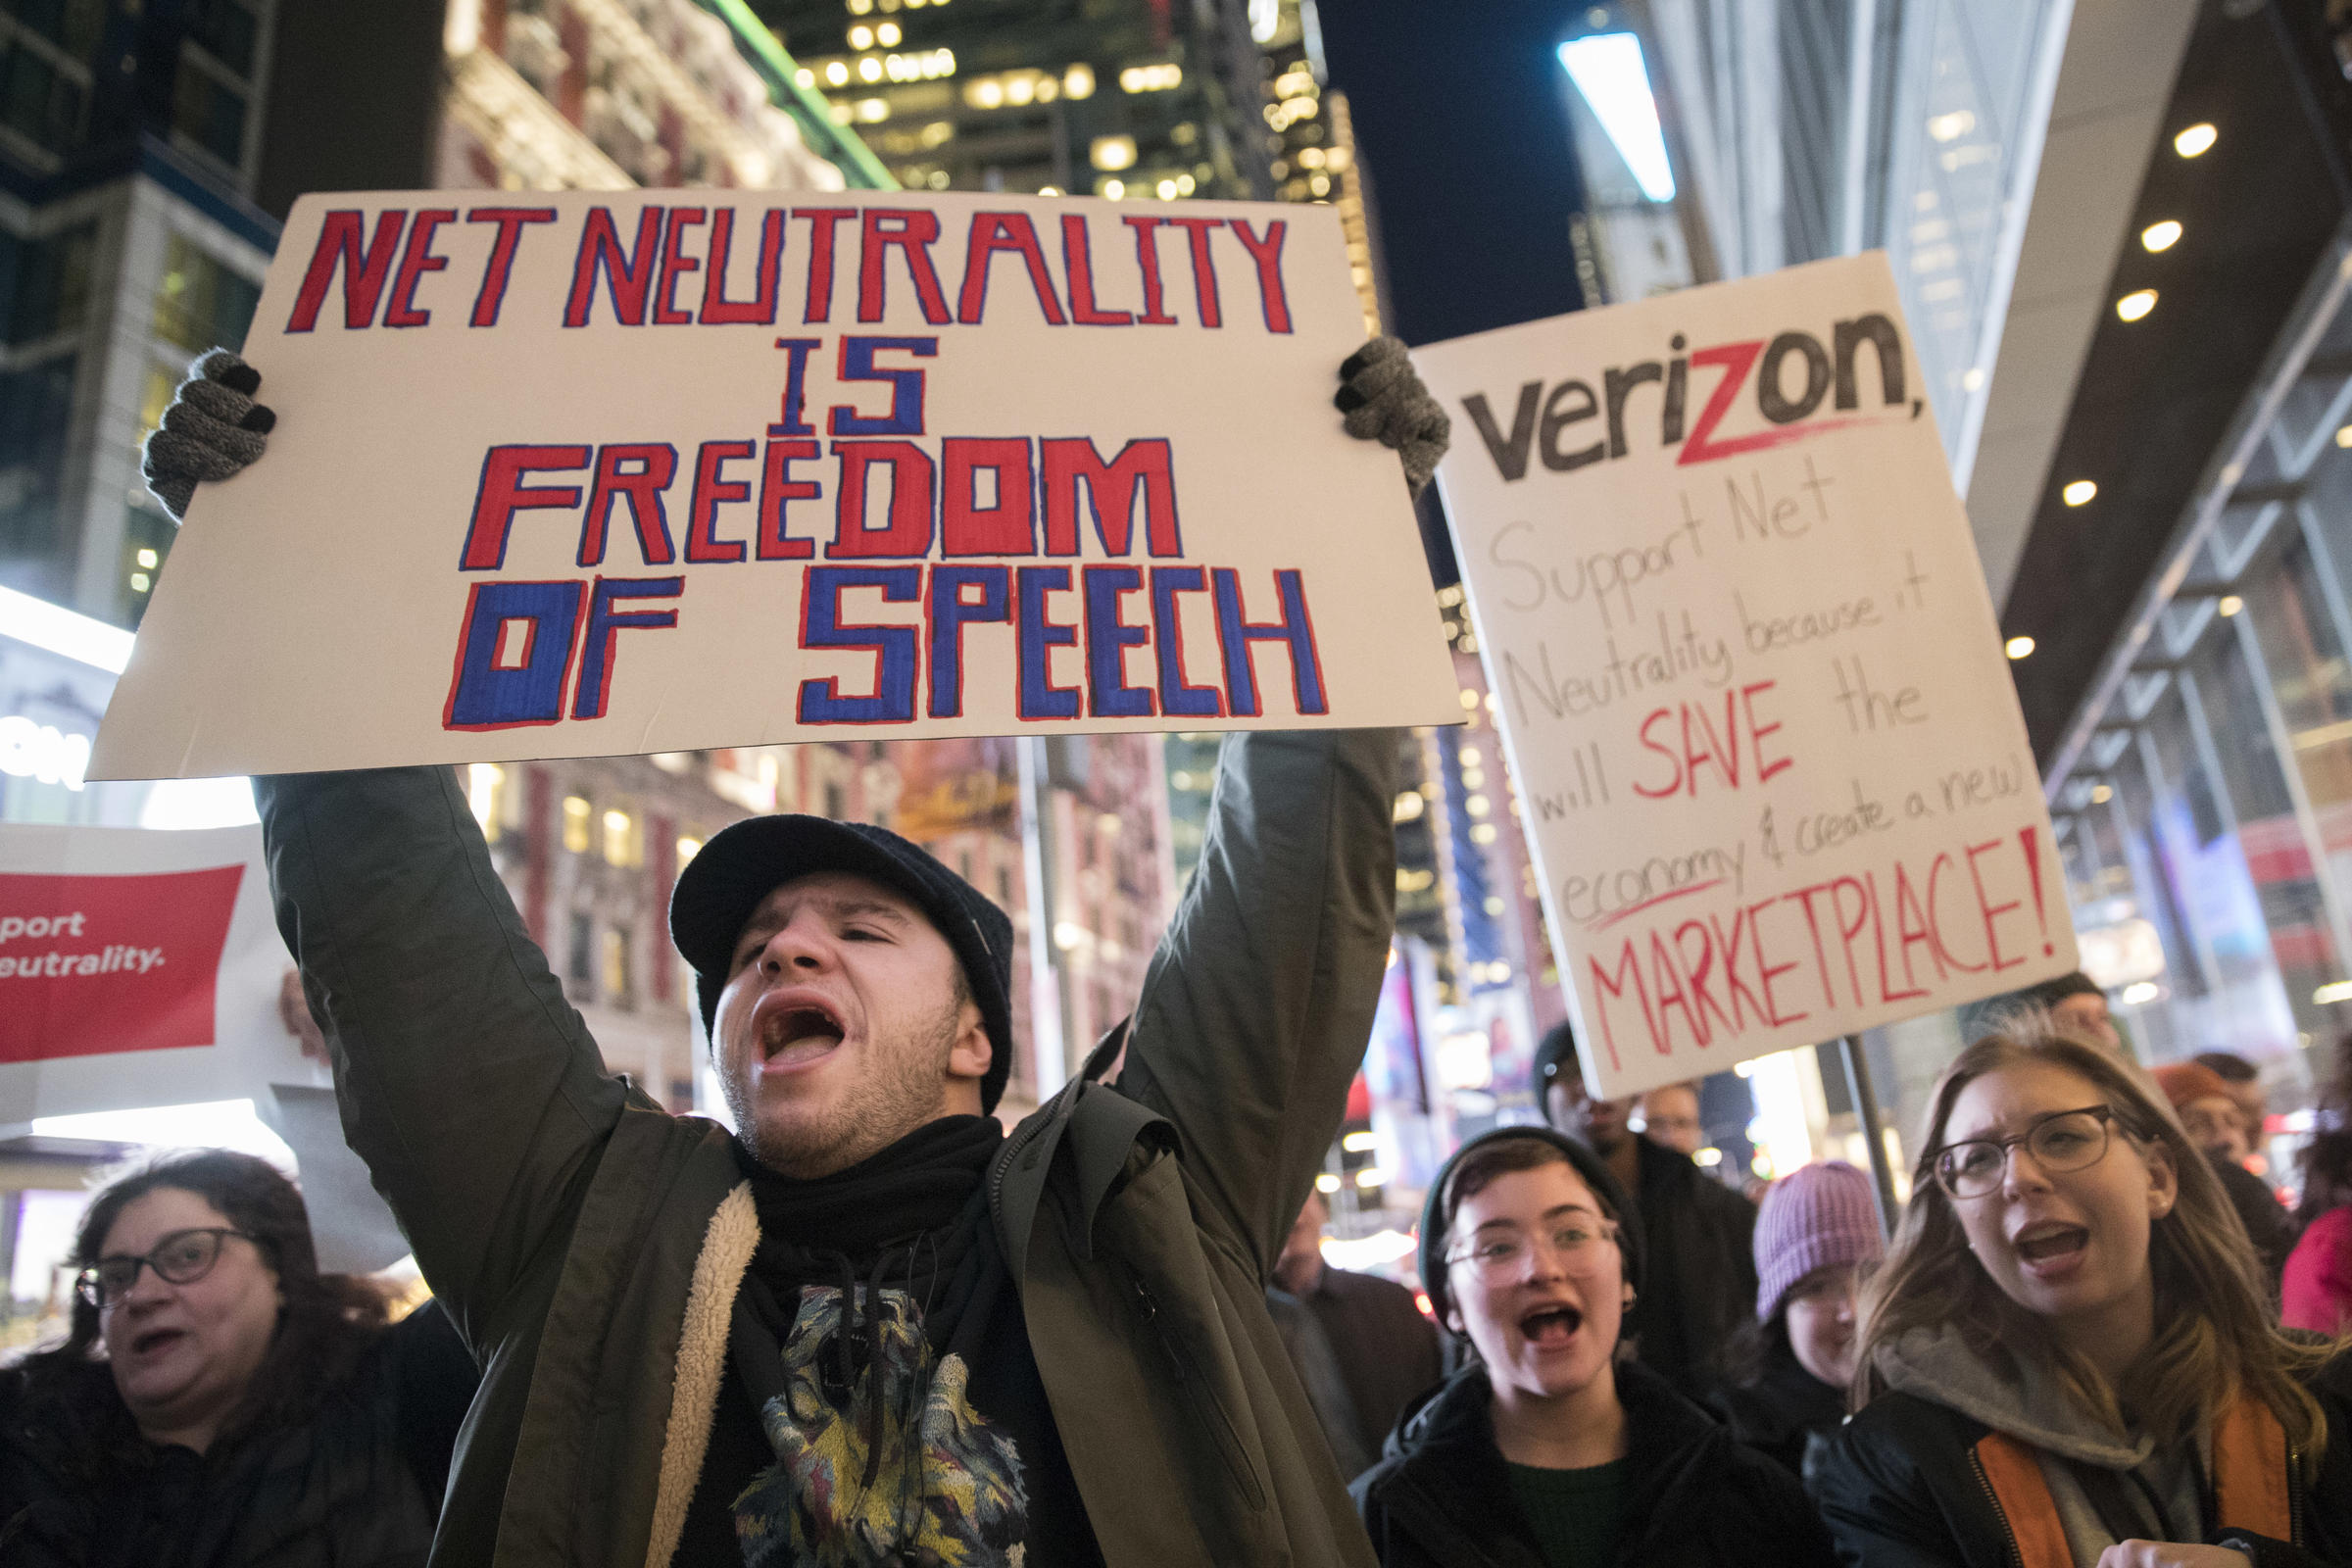 More than 20 states sue to stop FCC's net neutrality repeal